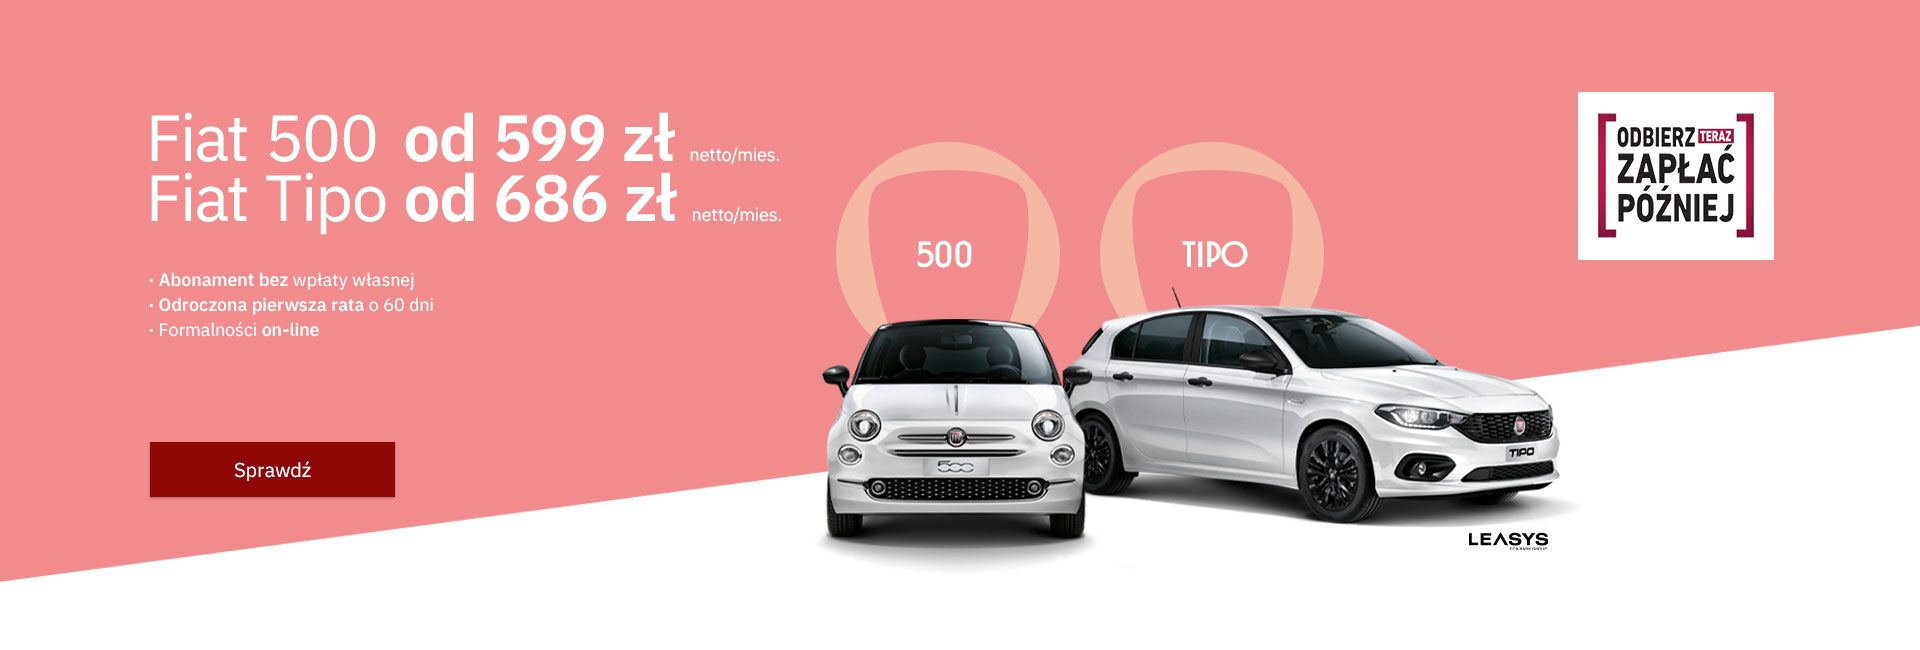 2020_06_fiatpartner_slider_500_i_tipo